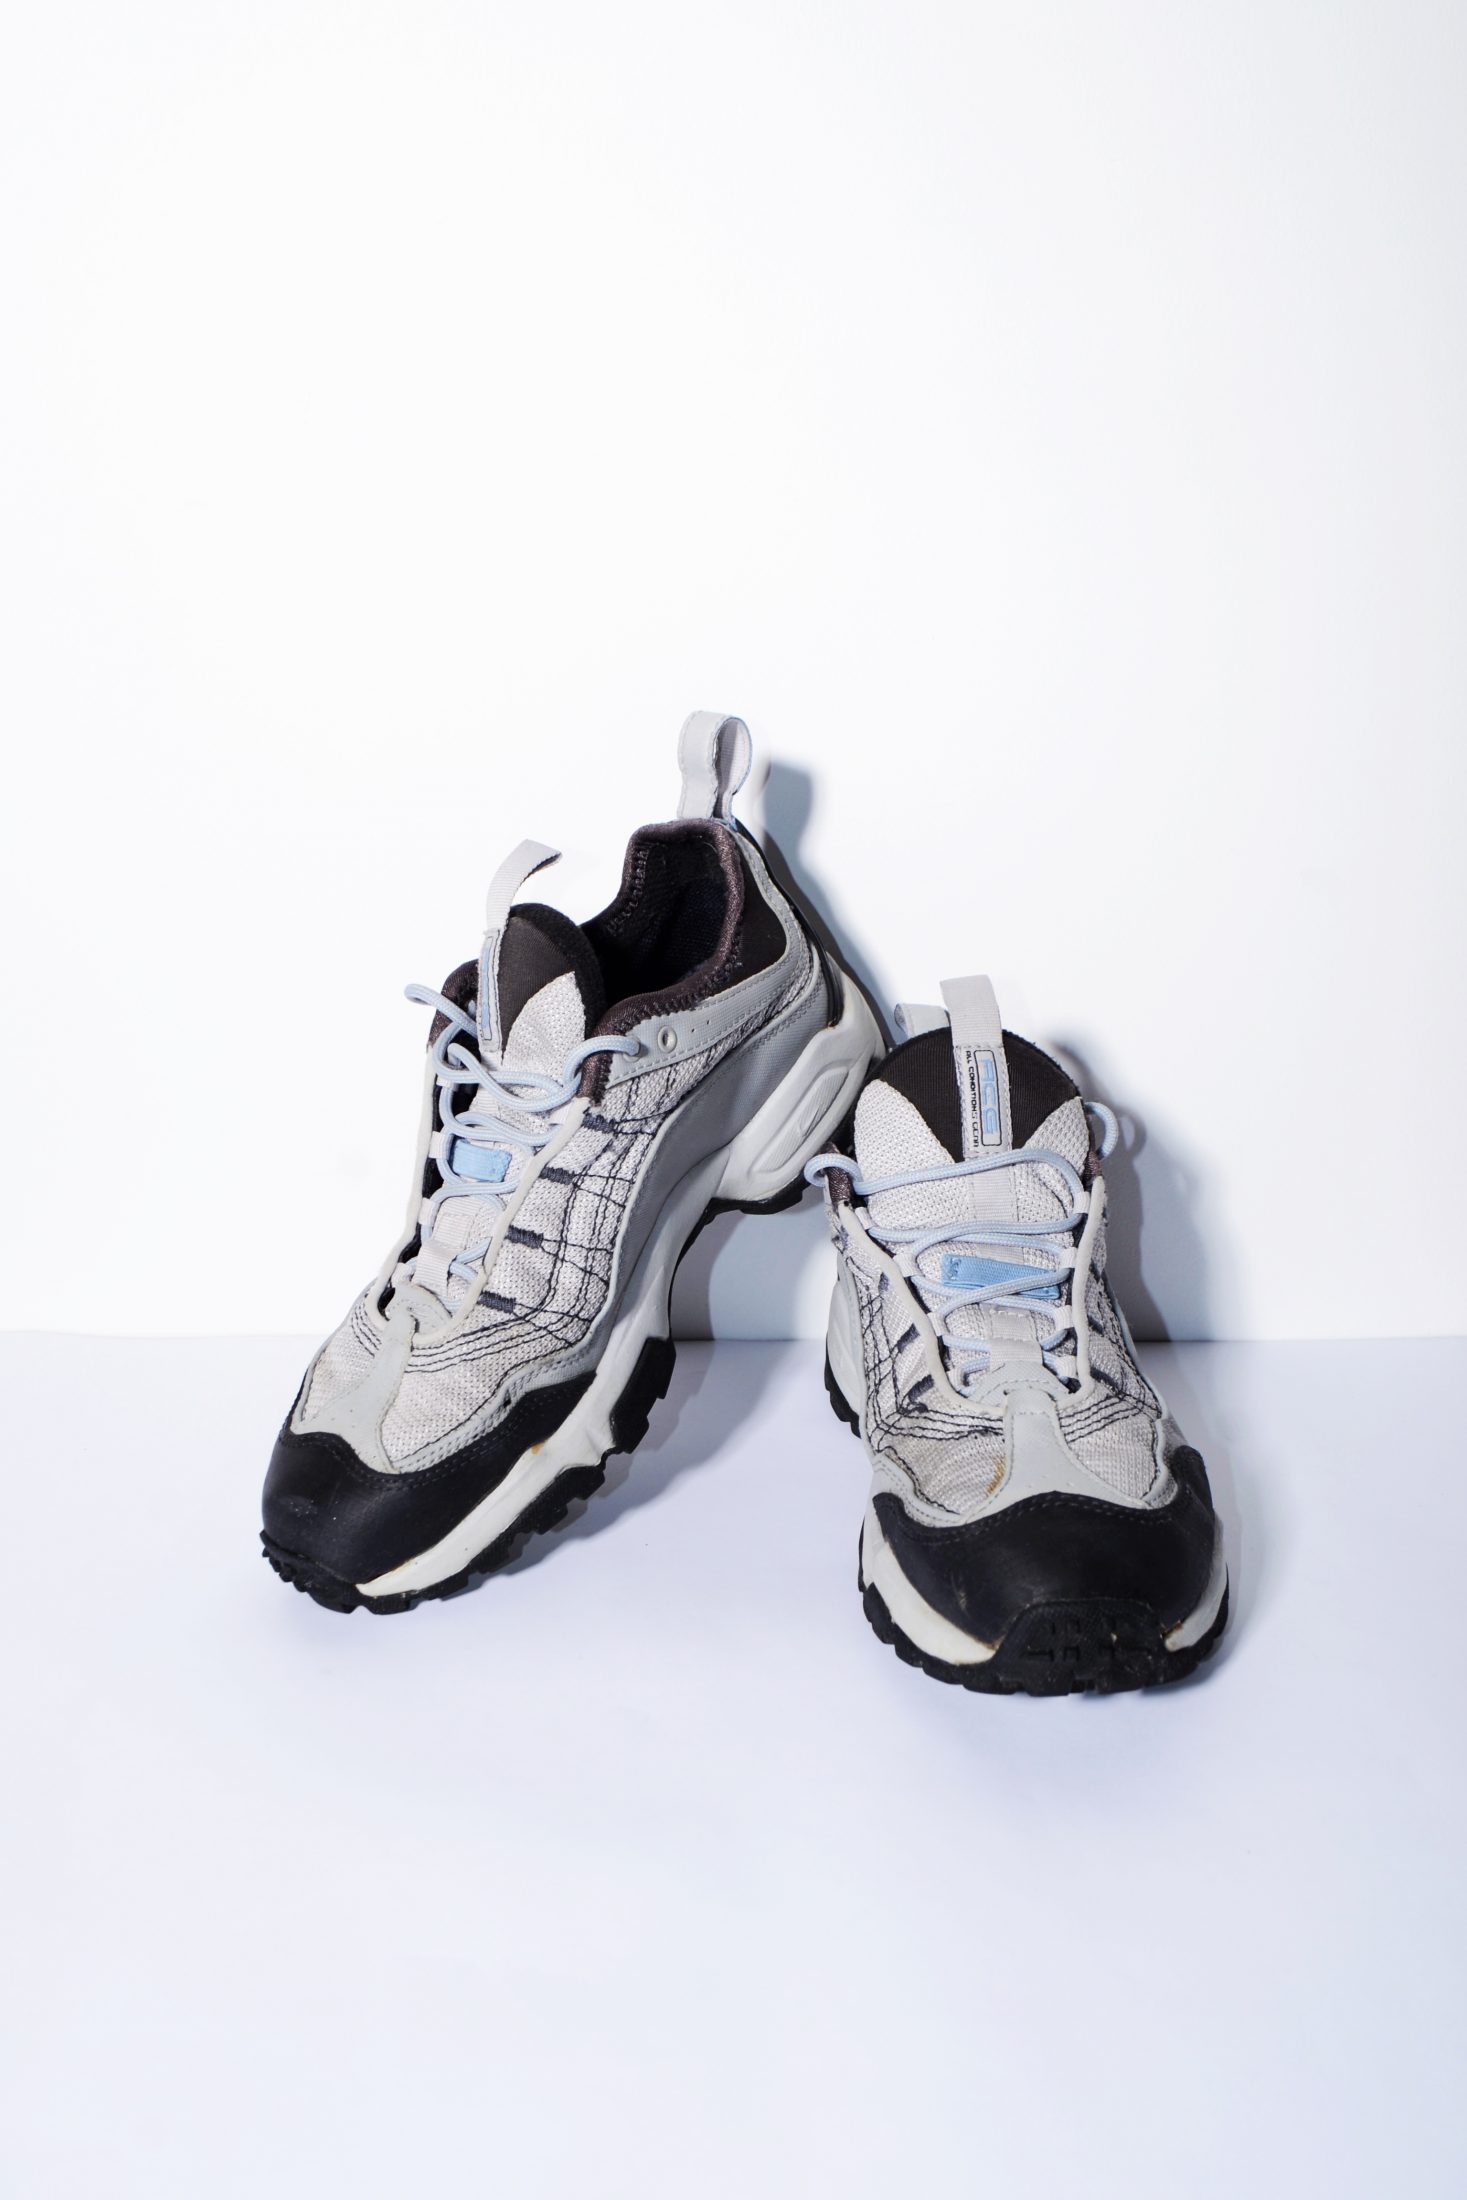 bafbb86acbe Out of stock. Nike Air Gore-Tex Shoes